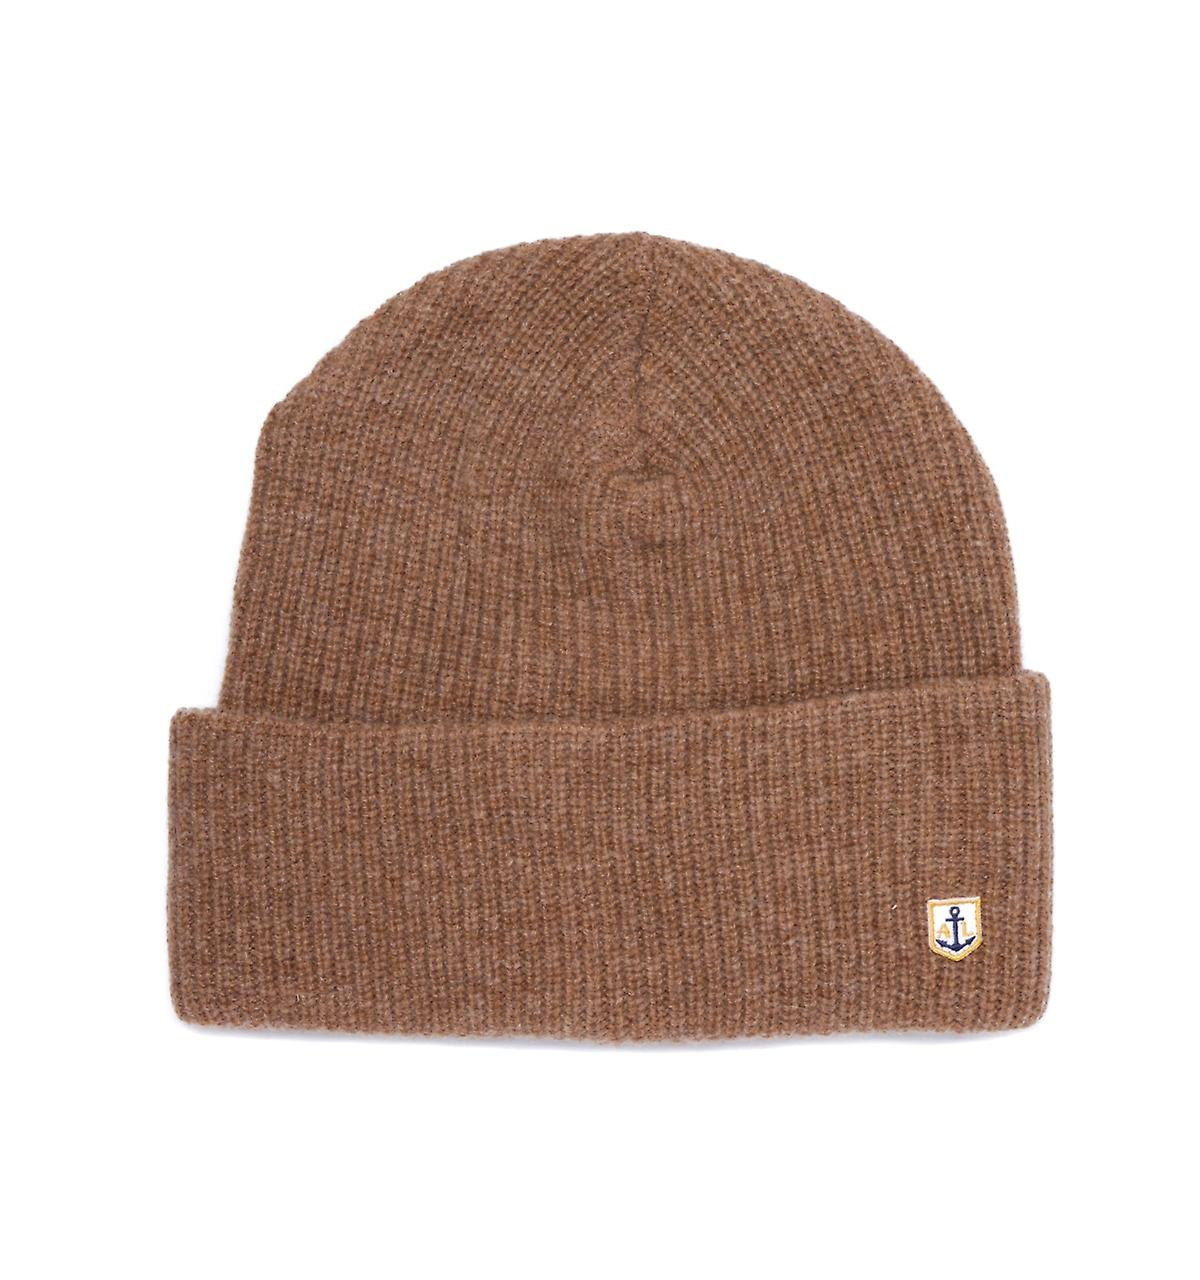 Armor Lux Logo Tab Light marron Beanie